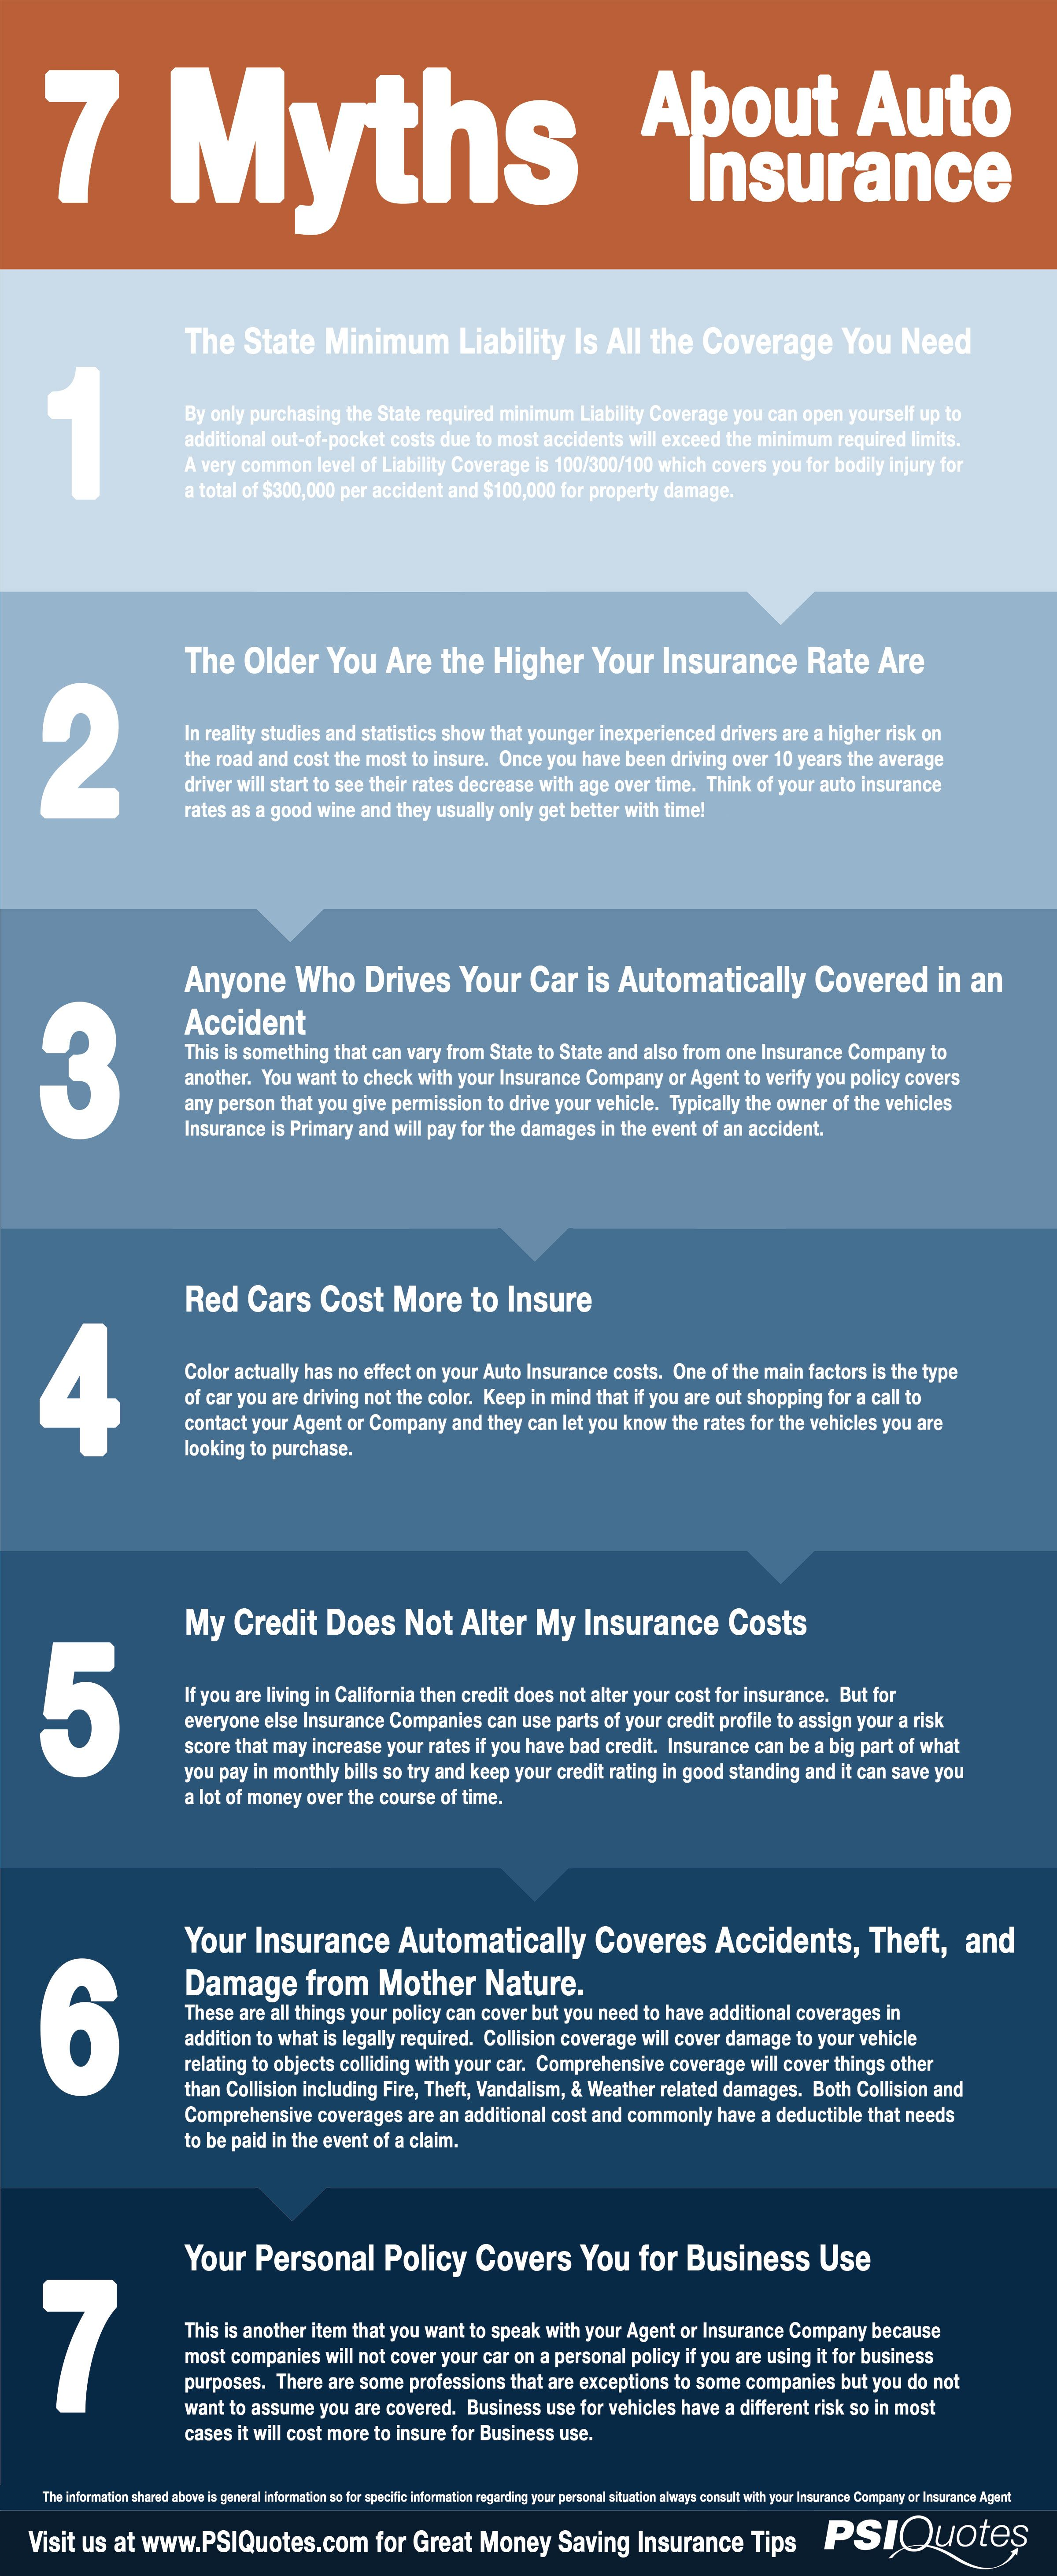 7 Myths About Auto Insurance Visit Us For More Great Money Saving Insurance Tips At Www Psiquotes Com Car